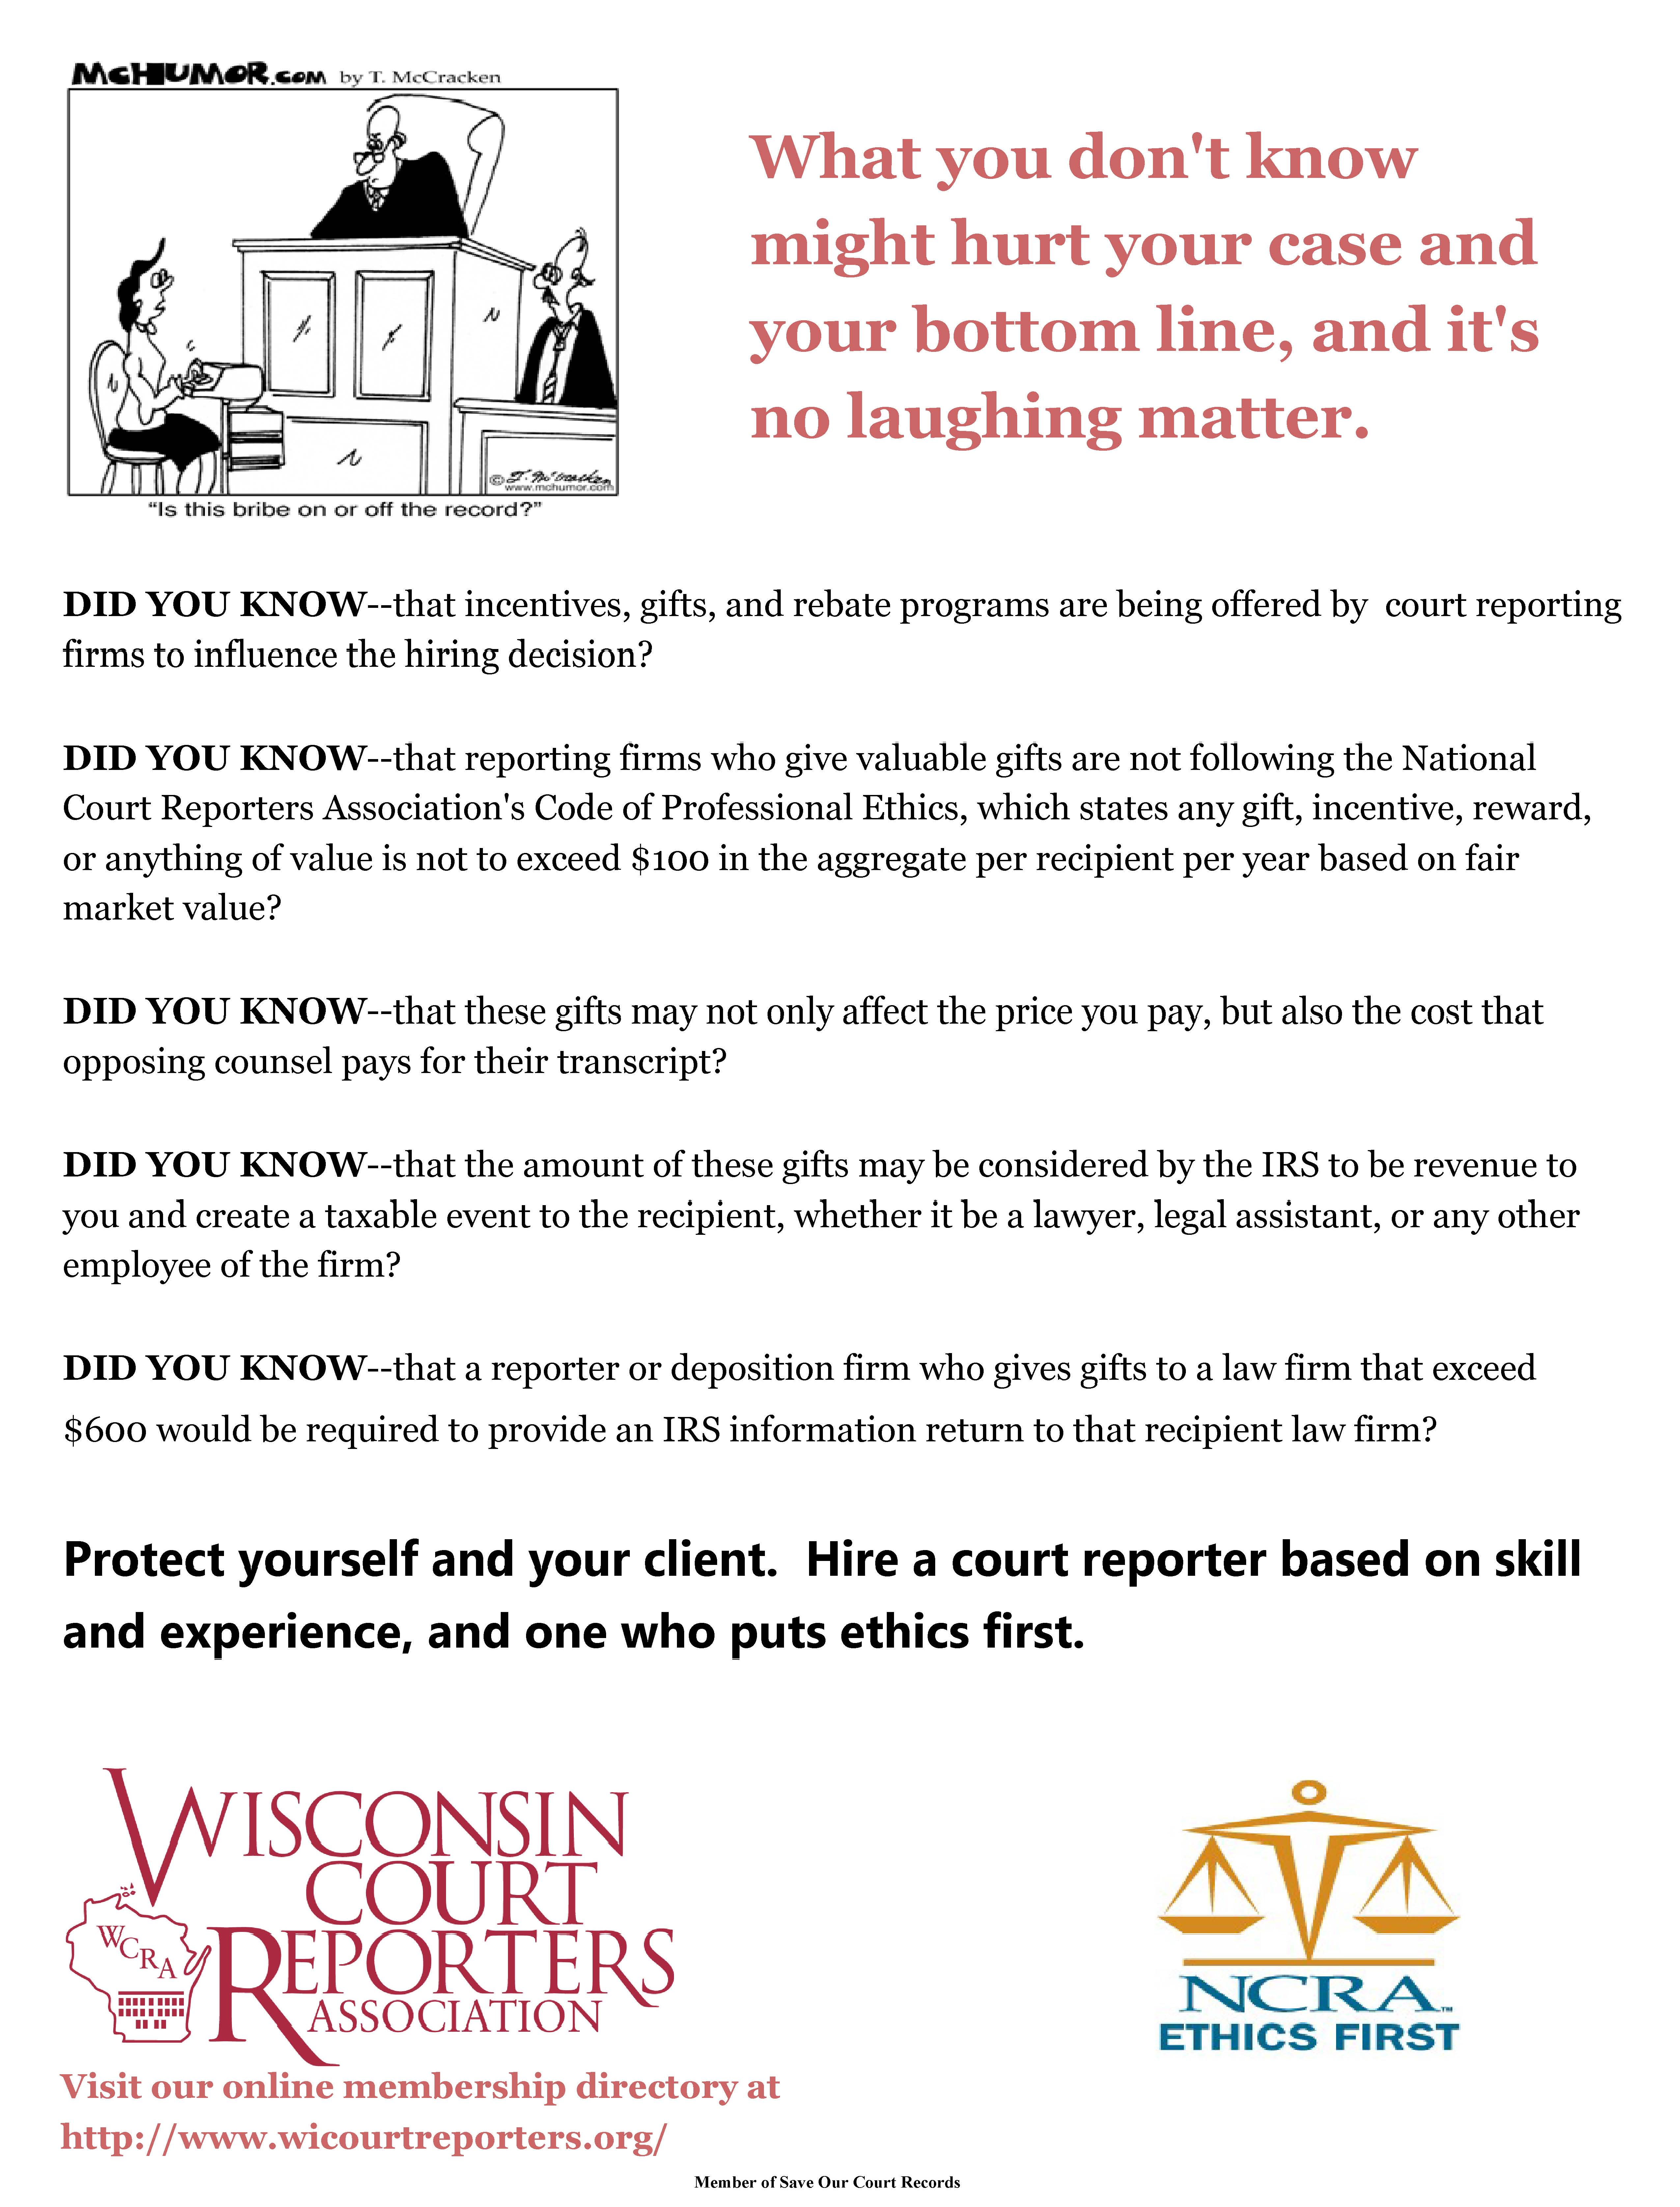 Ethics First with Cartoon--Wisconsin.jpg